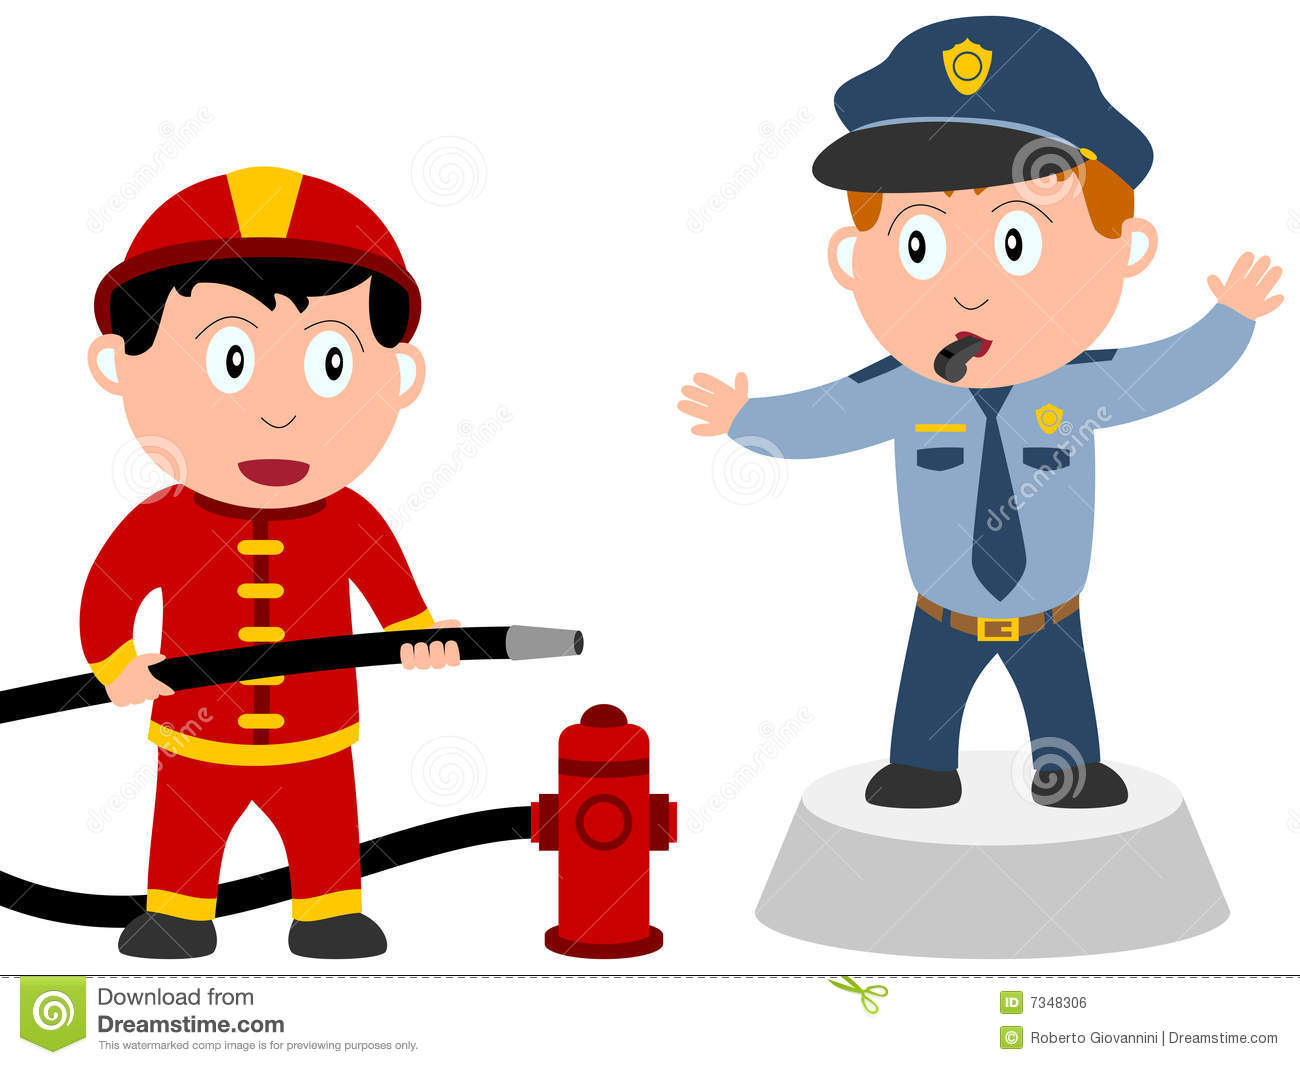 kids and jobs order  2  stock vector illustration of Firefighter Symbol Clip Art Cartoon Fireman Pole